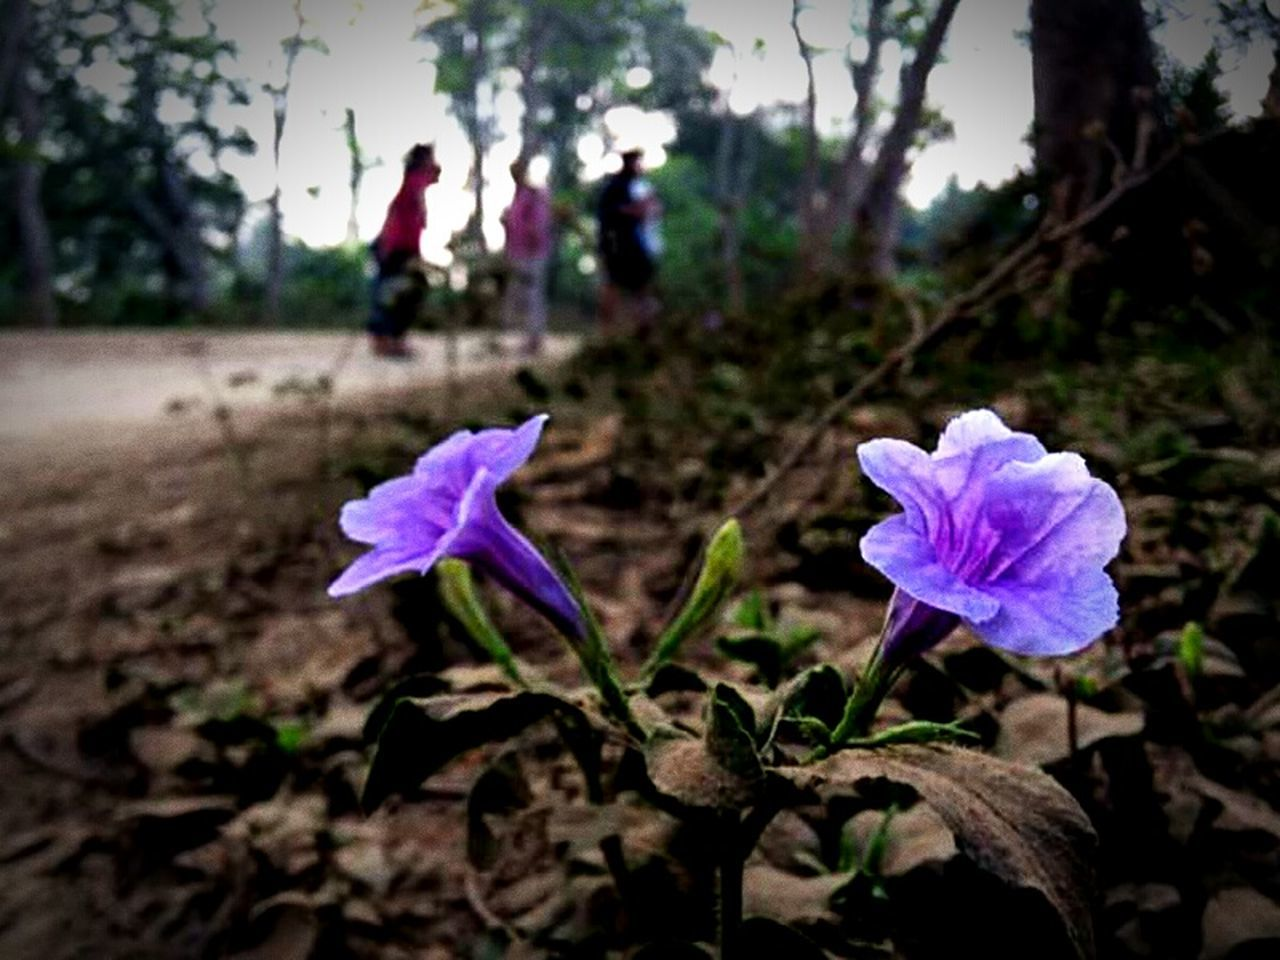 flower, nature, focus on foreground, fragility, growth, petal, outdoors, day, purple, field, plant, freshness, beauty in nature, flower head, close-up, blooming, no people